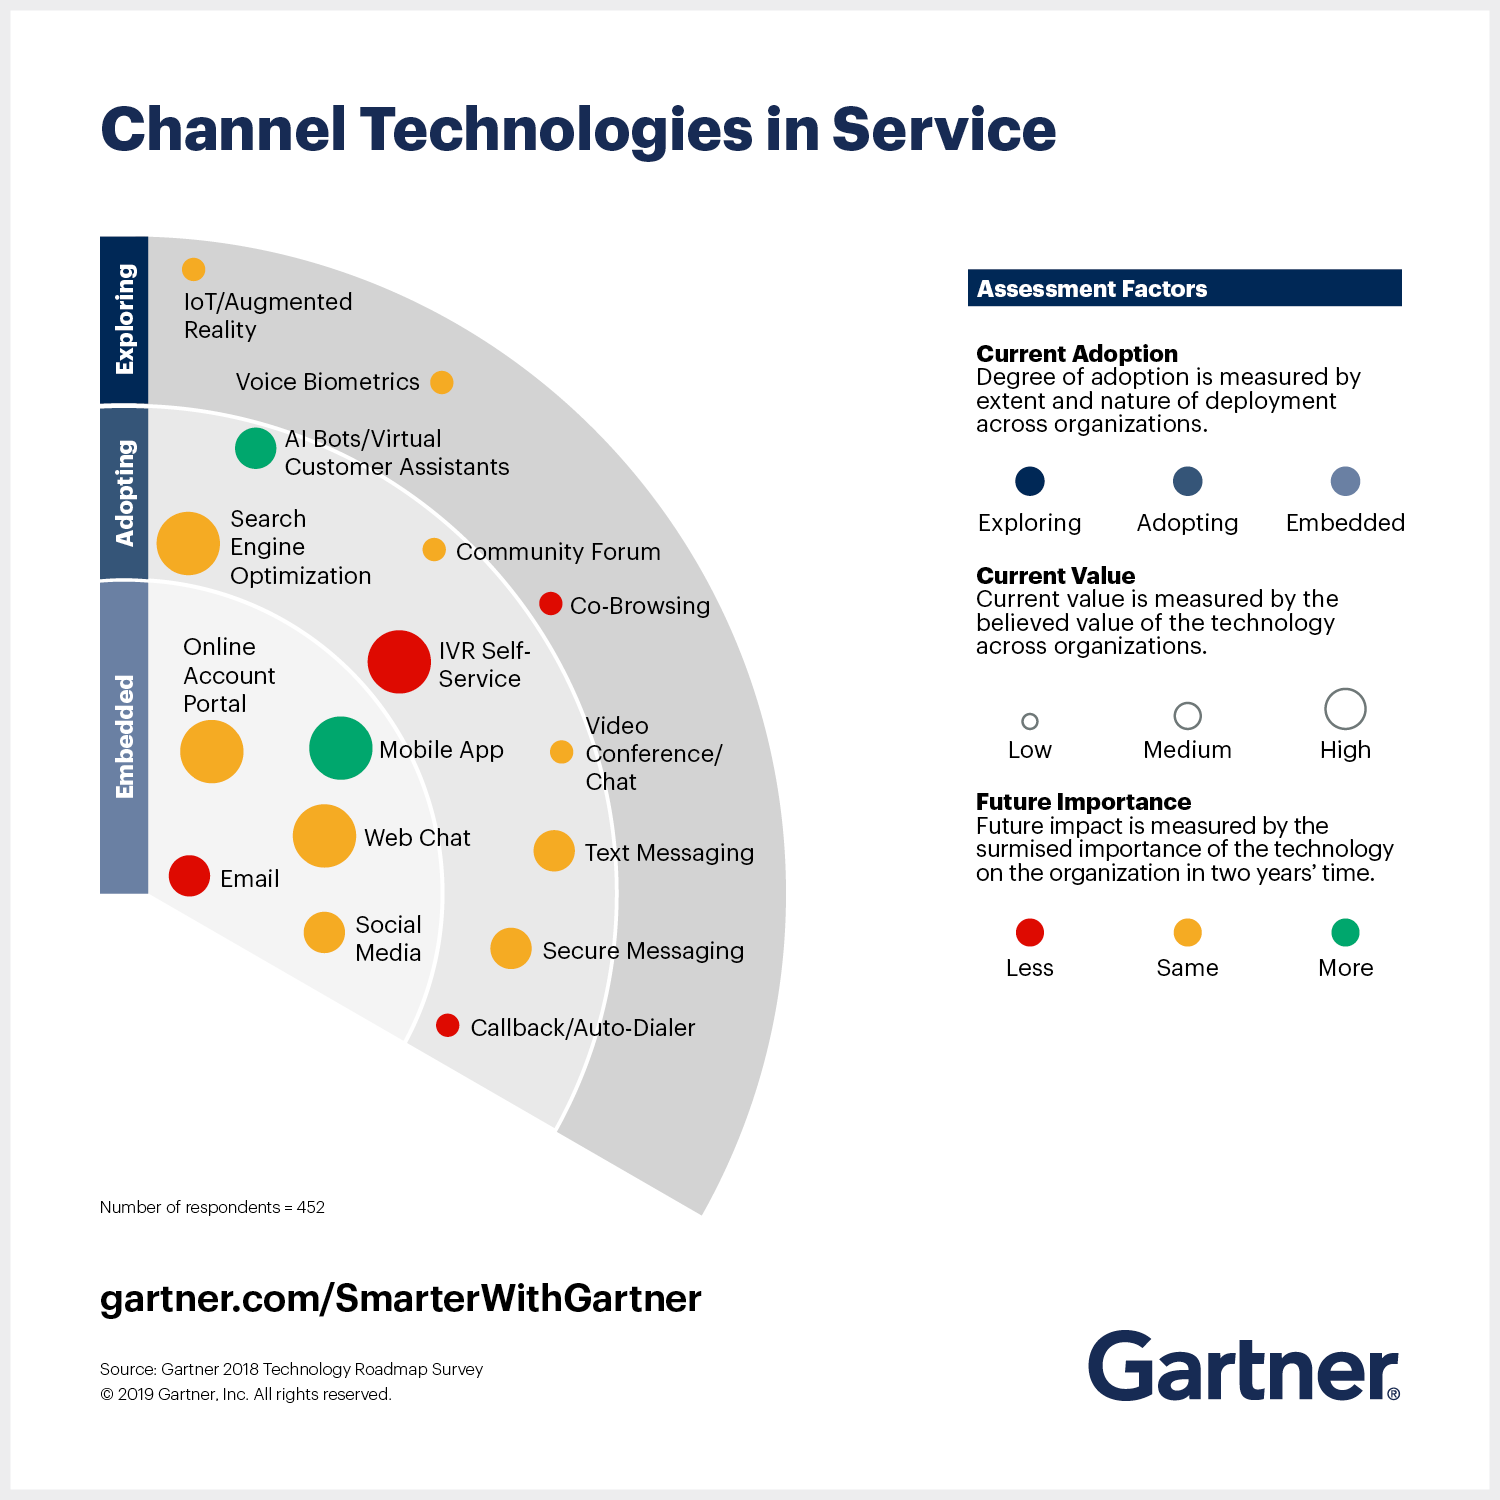 Gartner Service Technologies Bullseye shows current and emerging trends in technology use.